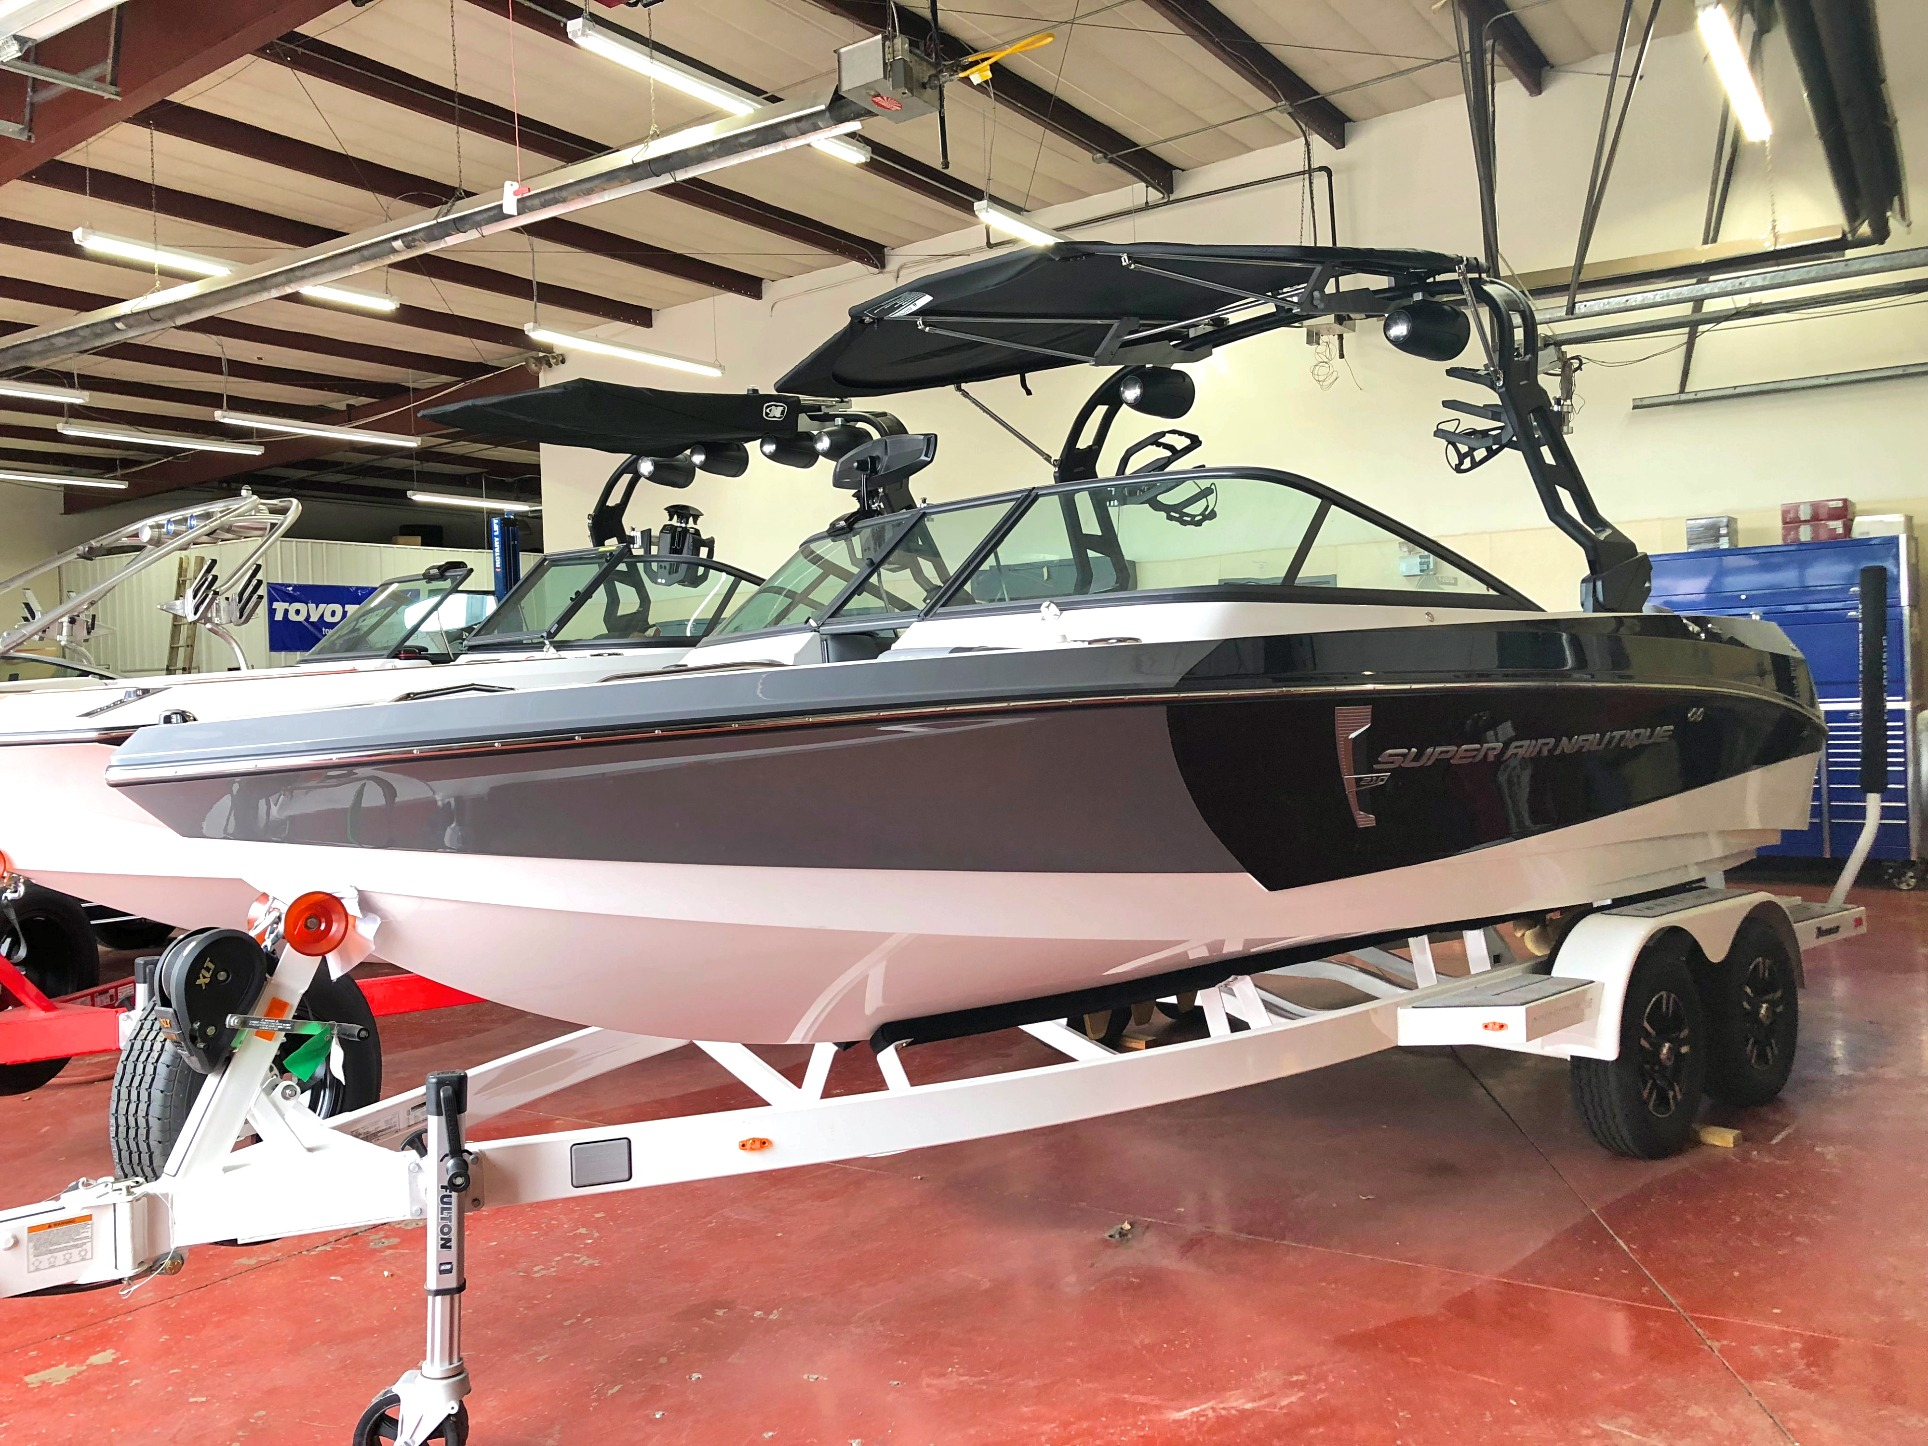 2018 Super Air Nautique 210 for sale in Wichita, Kansas at All Elements Auto and Marine